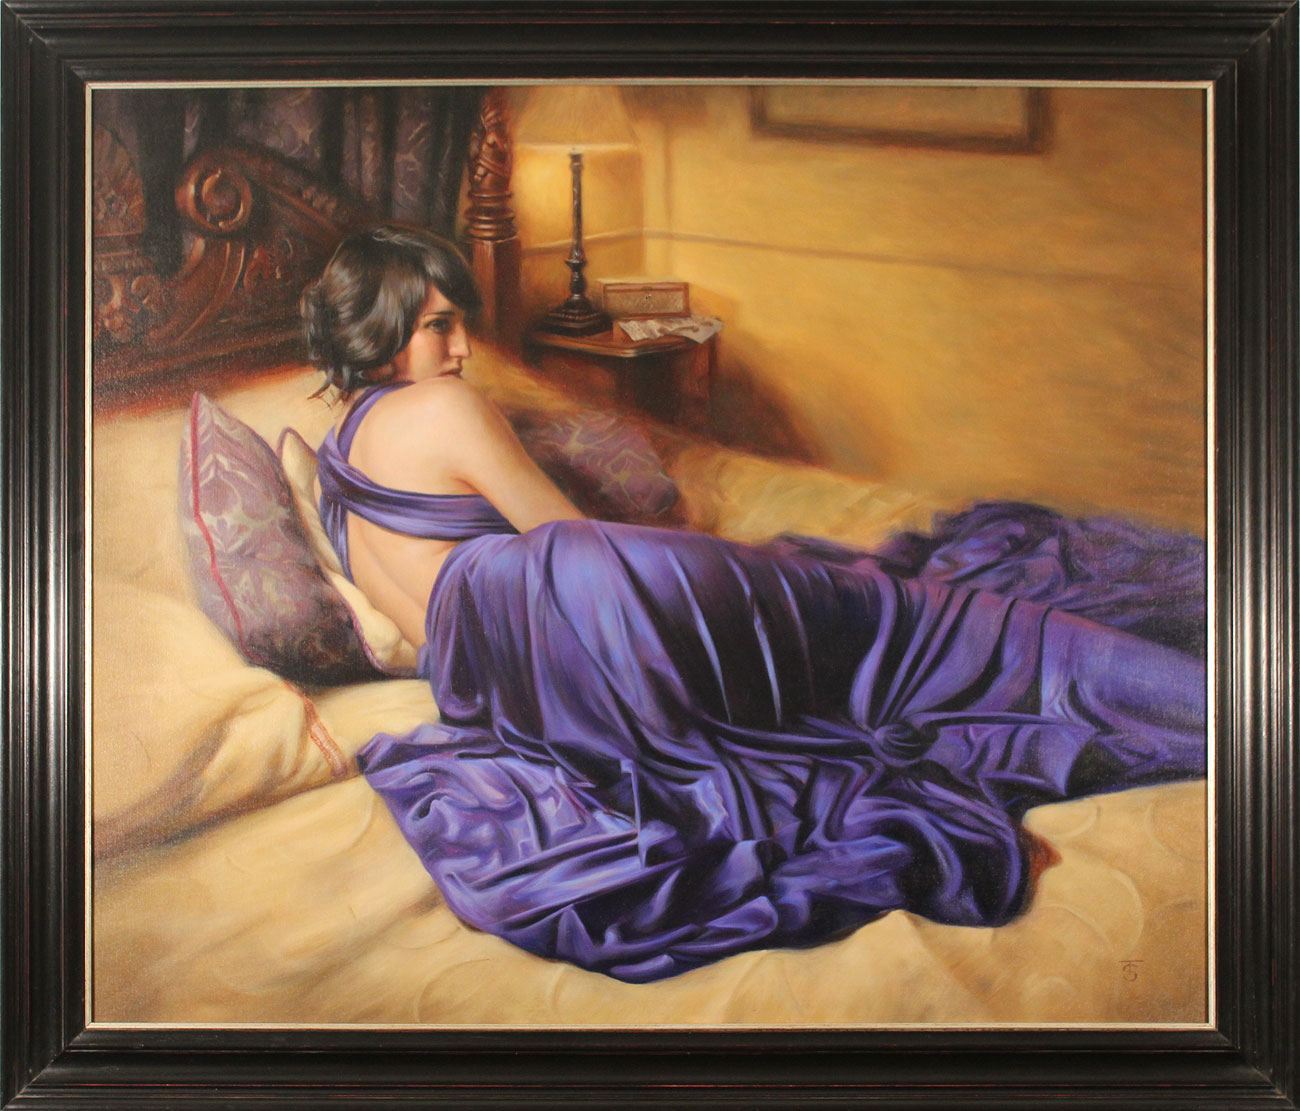 Tina Spratt, Original oil painting on canvas, The Promise. Click to enlarge